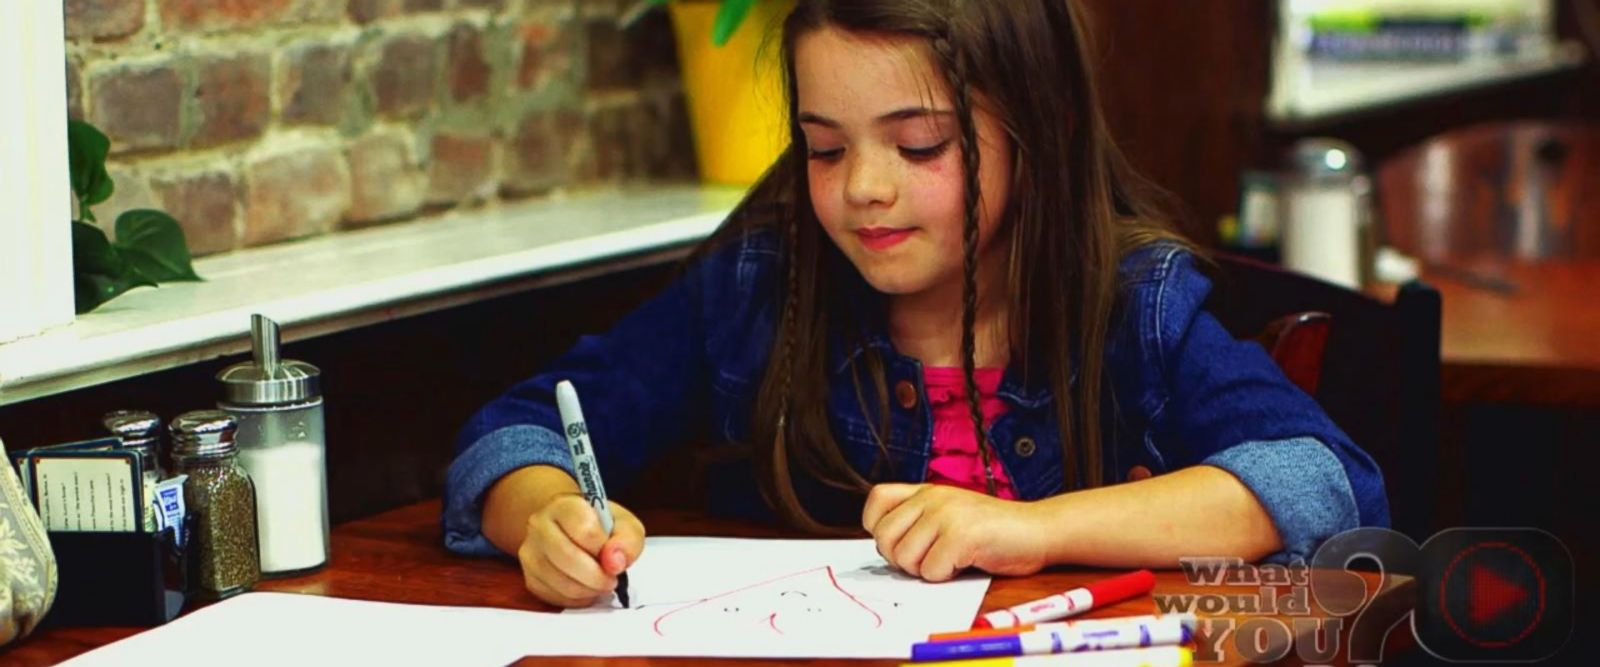 VIDEO: What Would You Do: Little girl draws on paintings with markers in a café